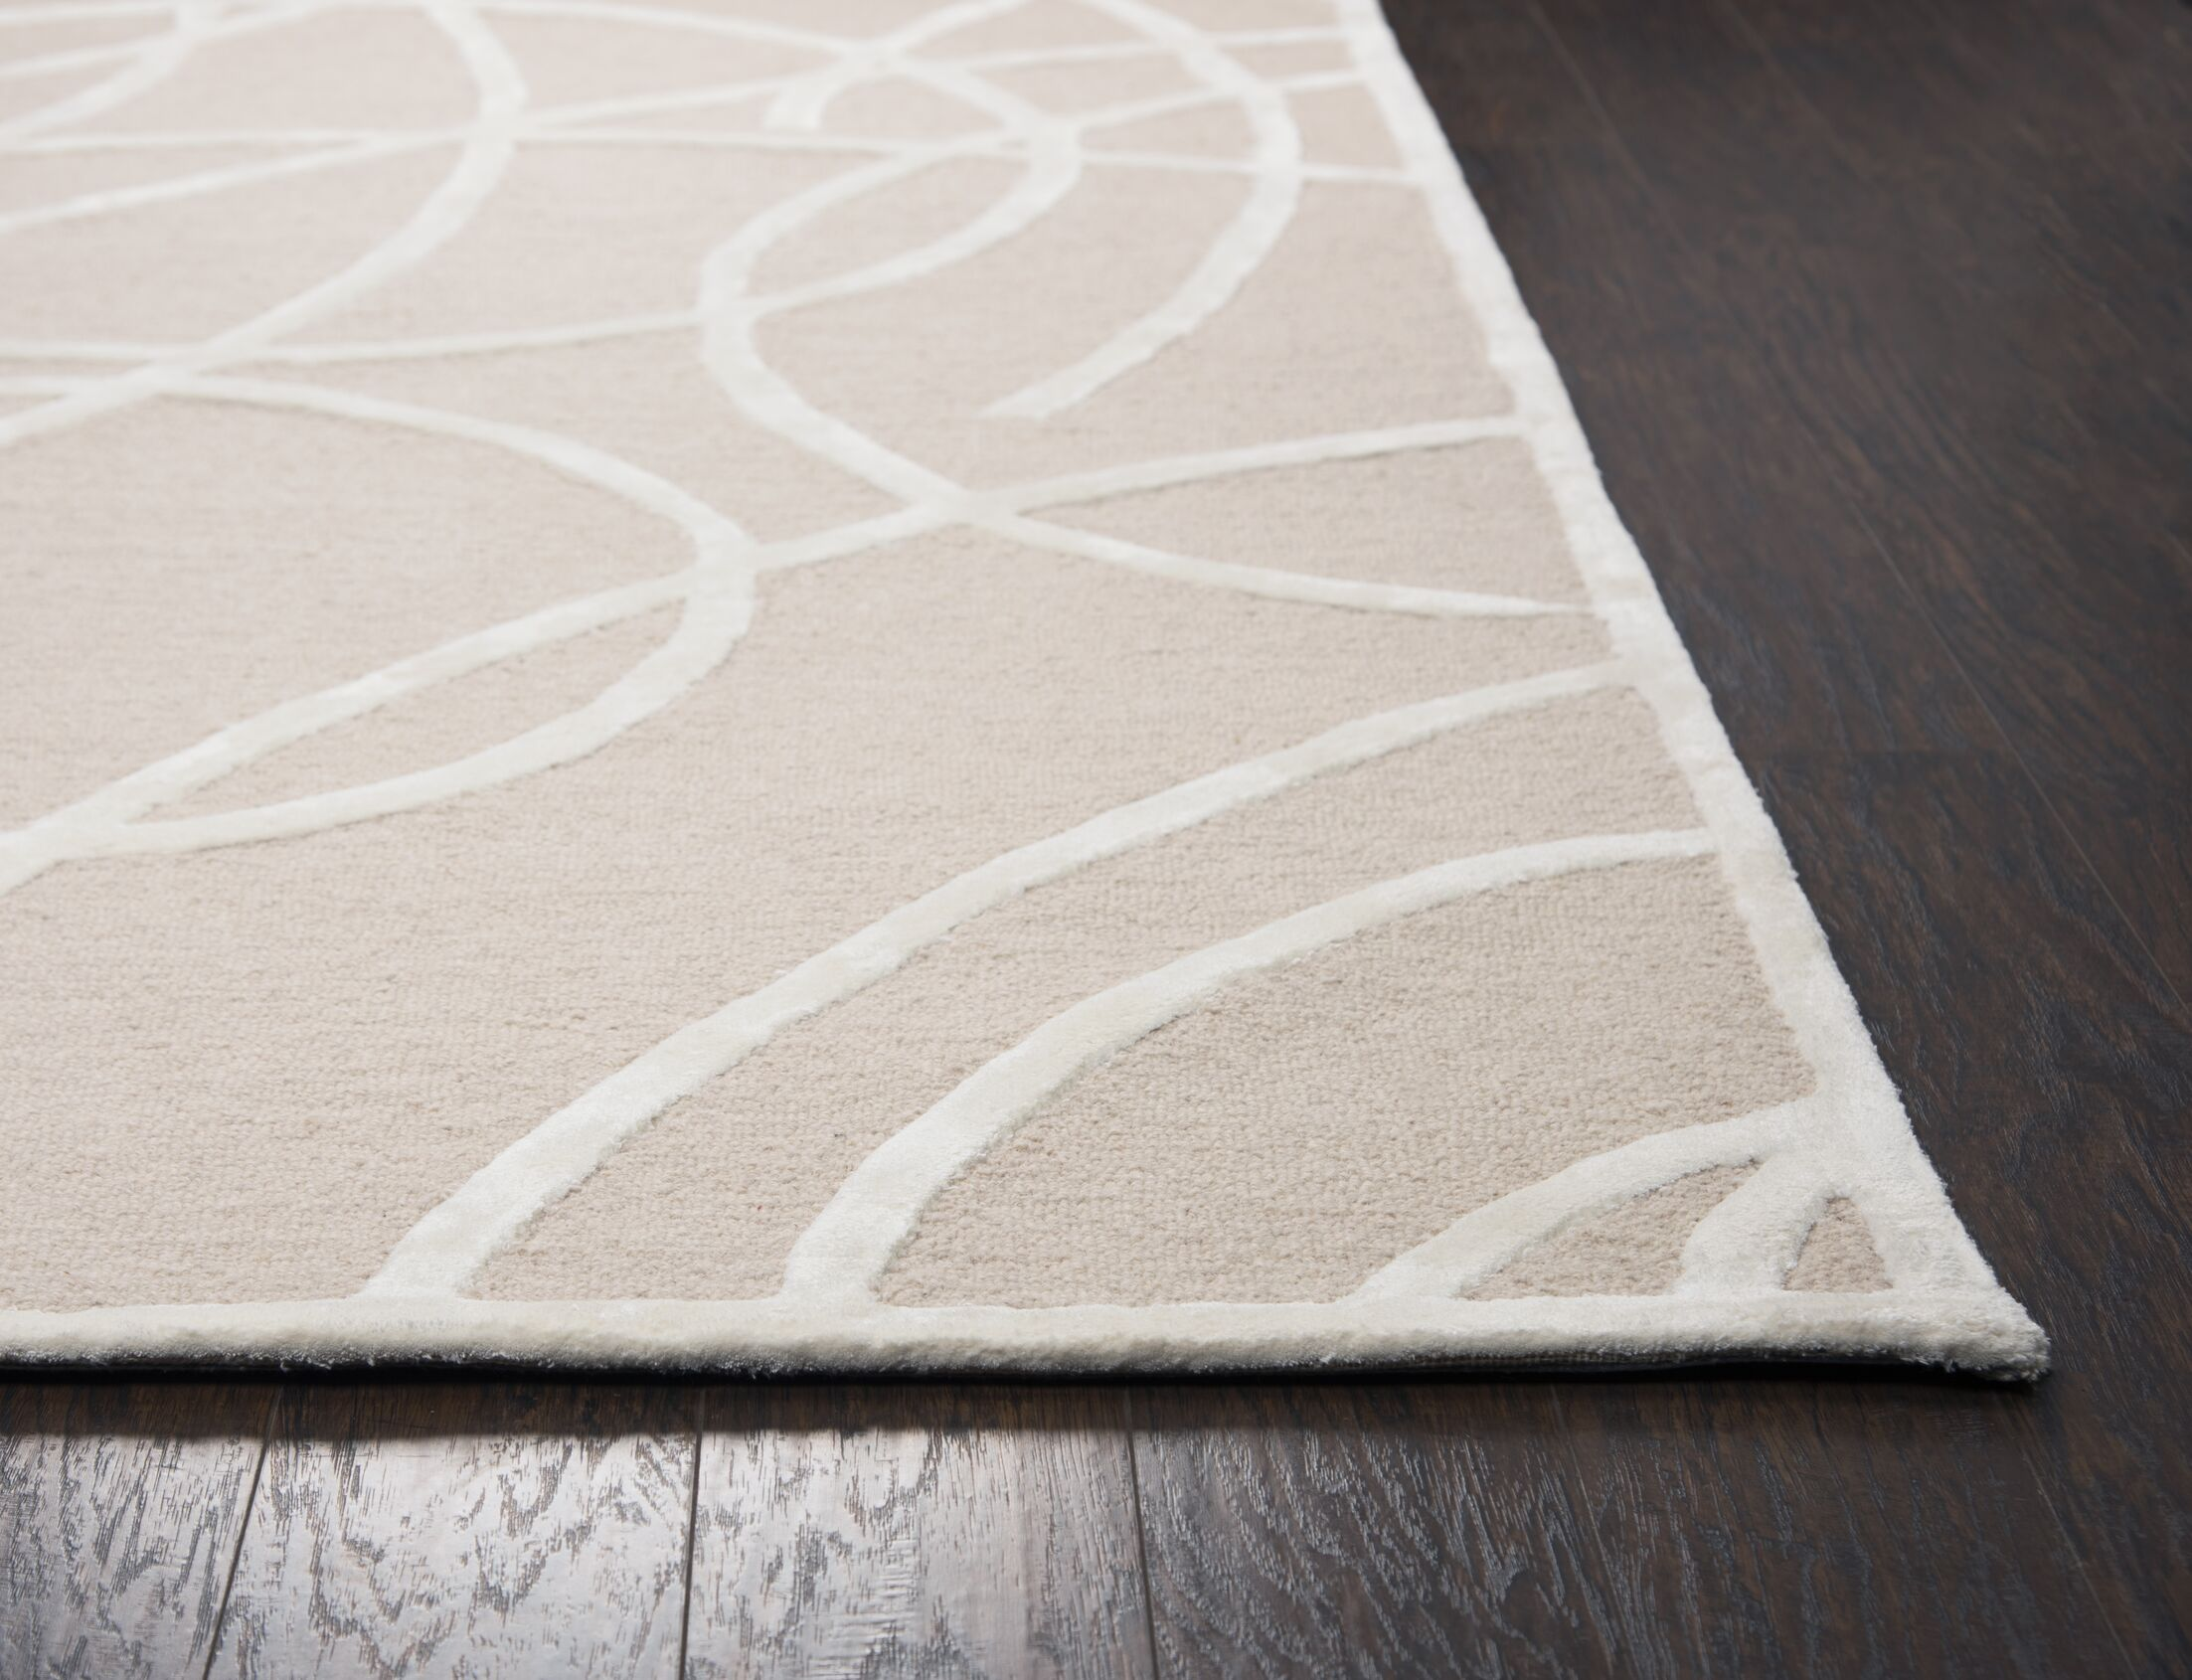 Climenhaga Hand-Tufted Brown/White Area Rug Size: Runner 2'6